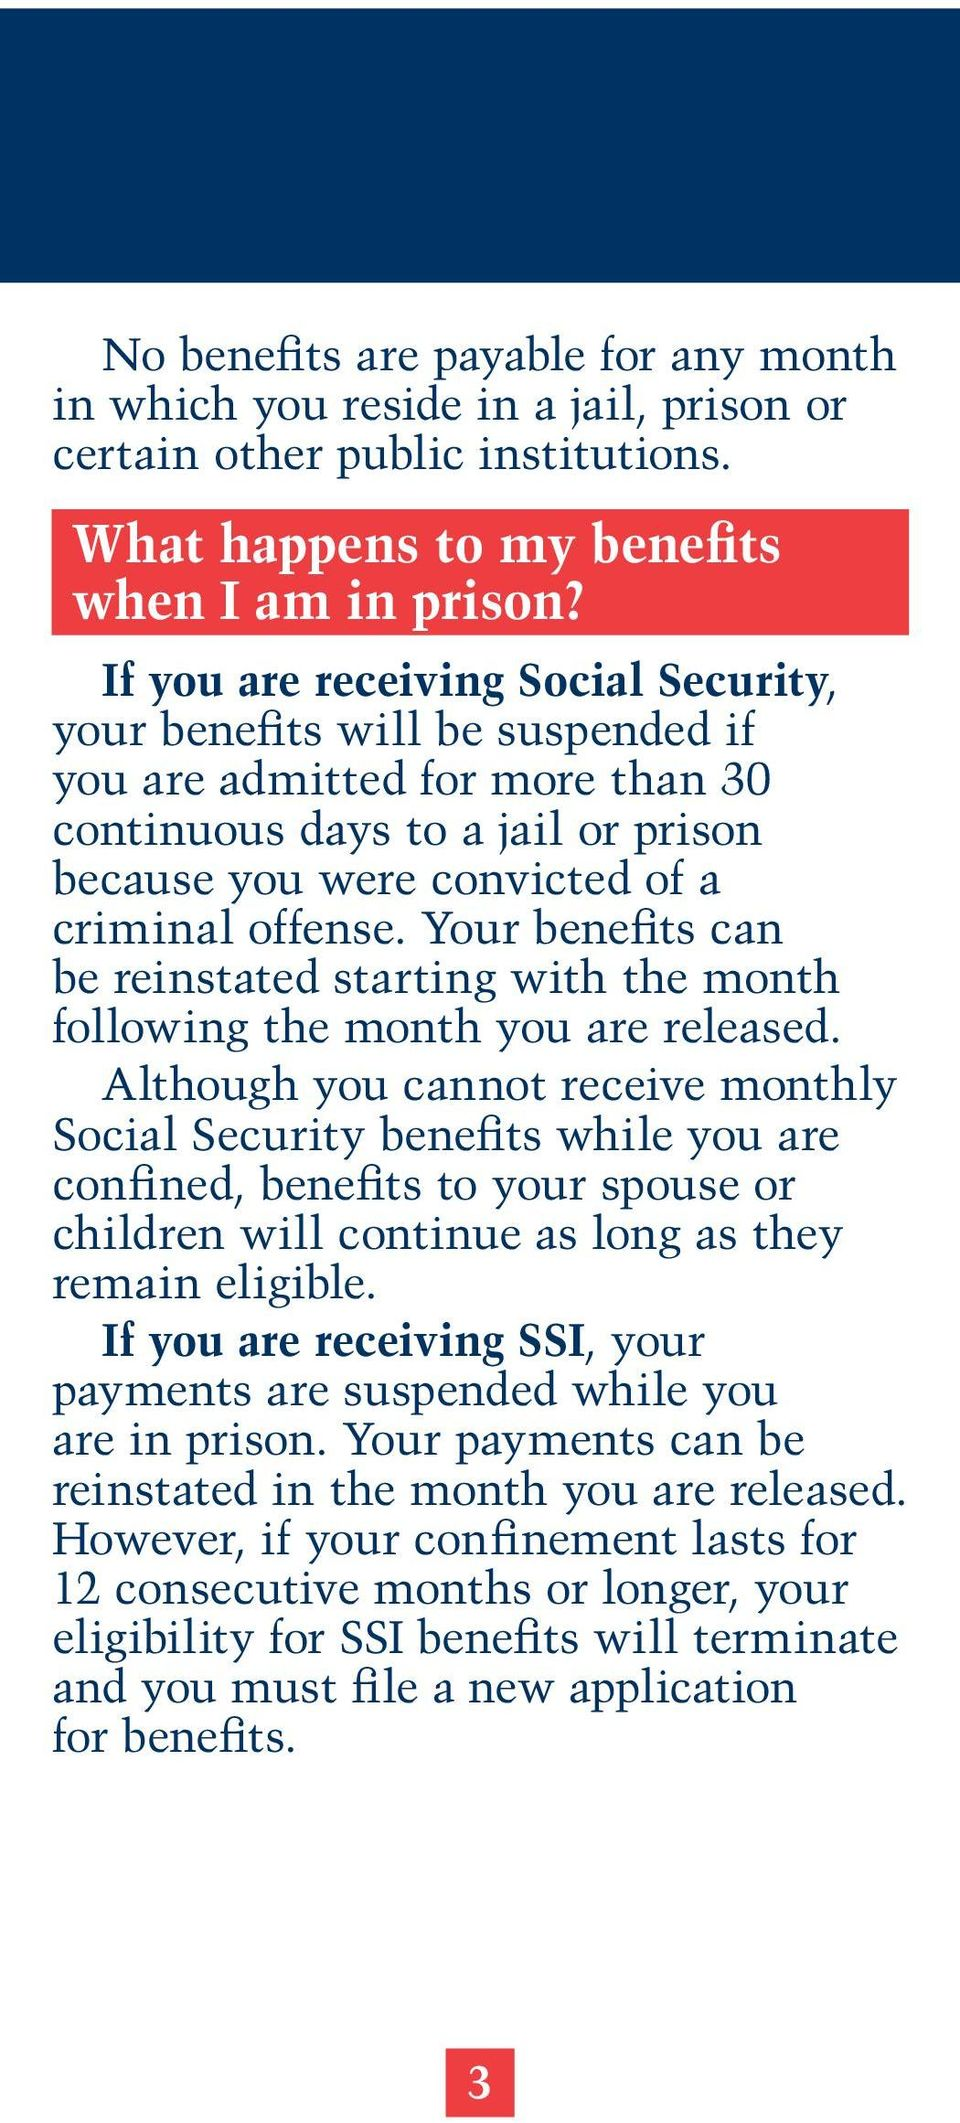 Your benefits can be reinstated starting with the month following the month you are released.